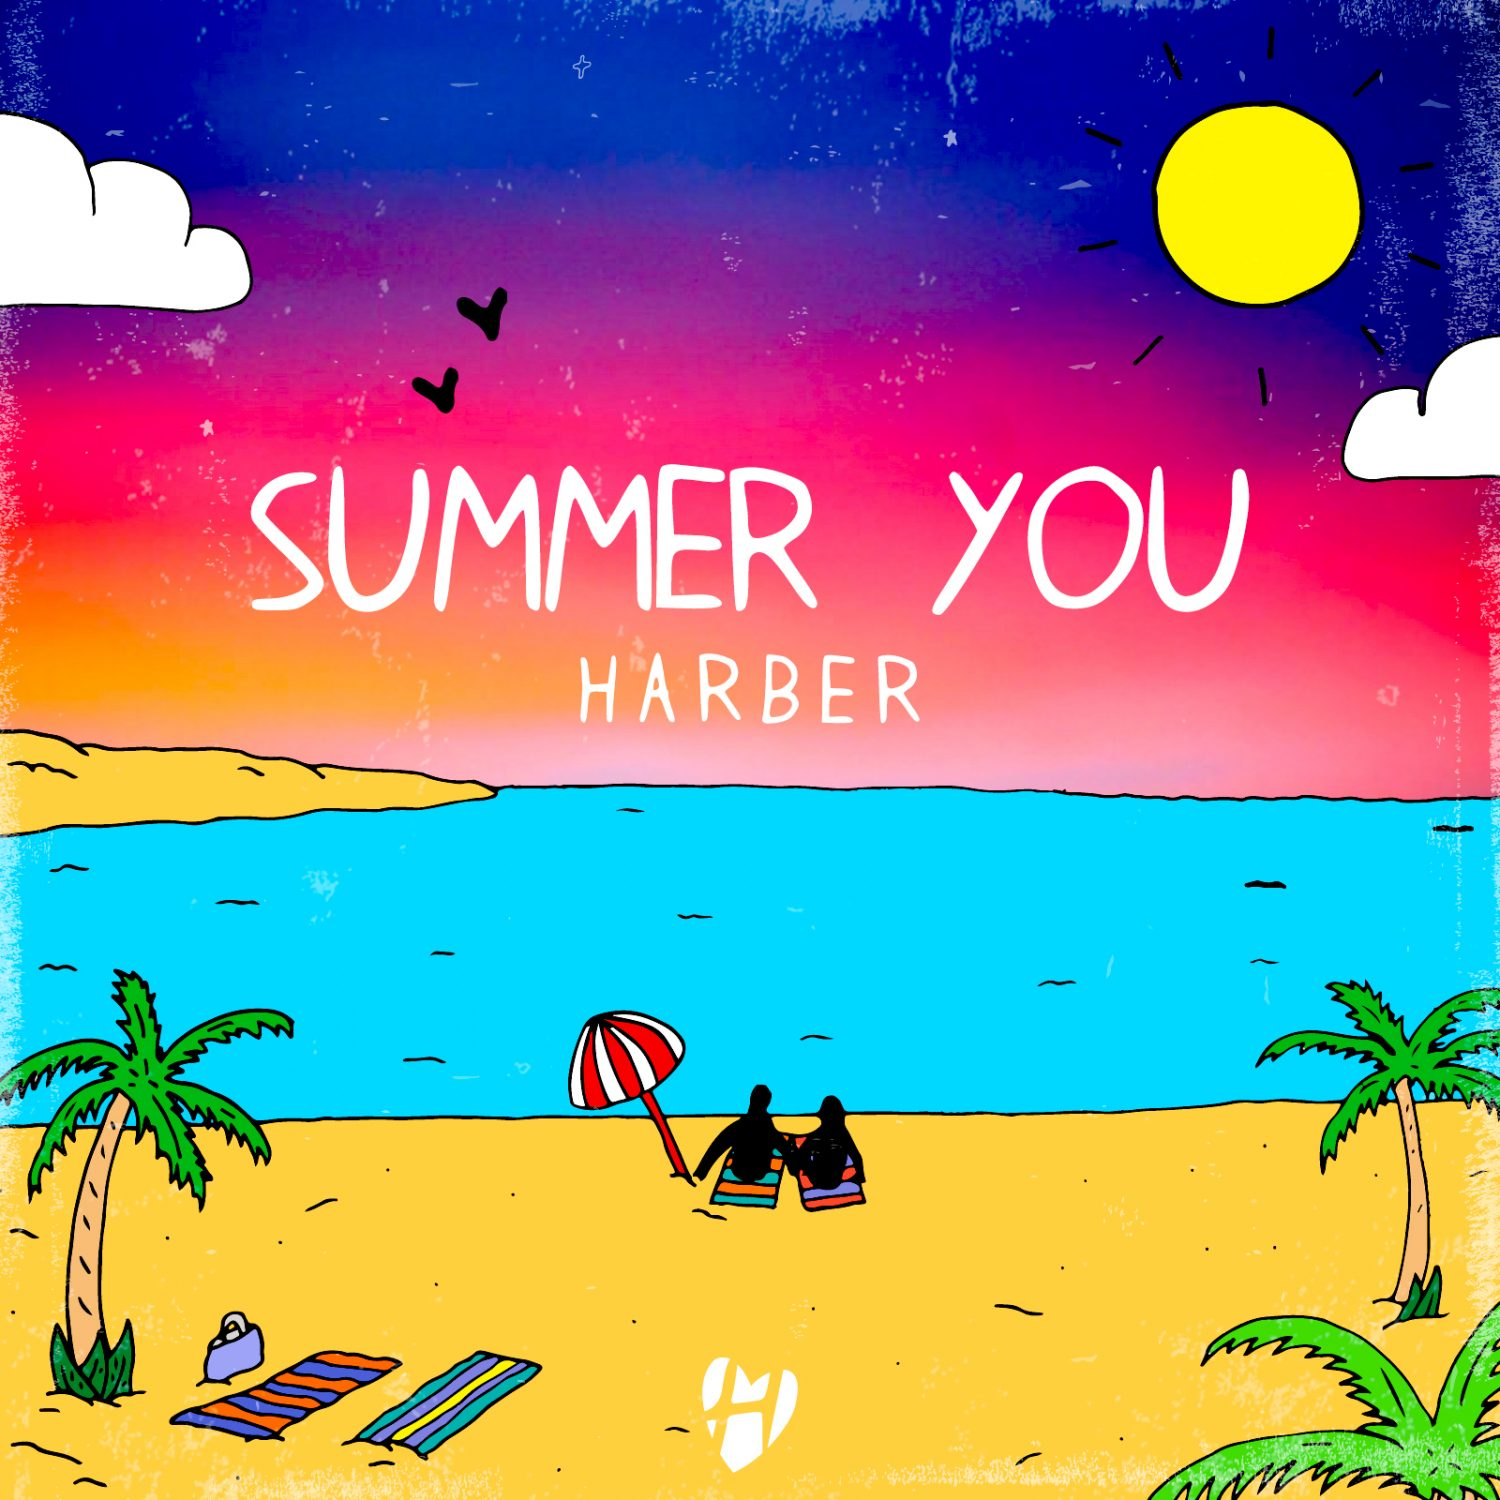 HARBER Summer You